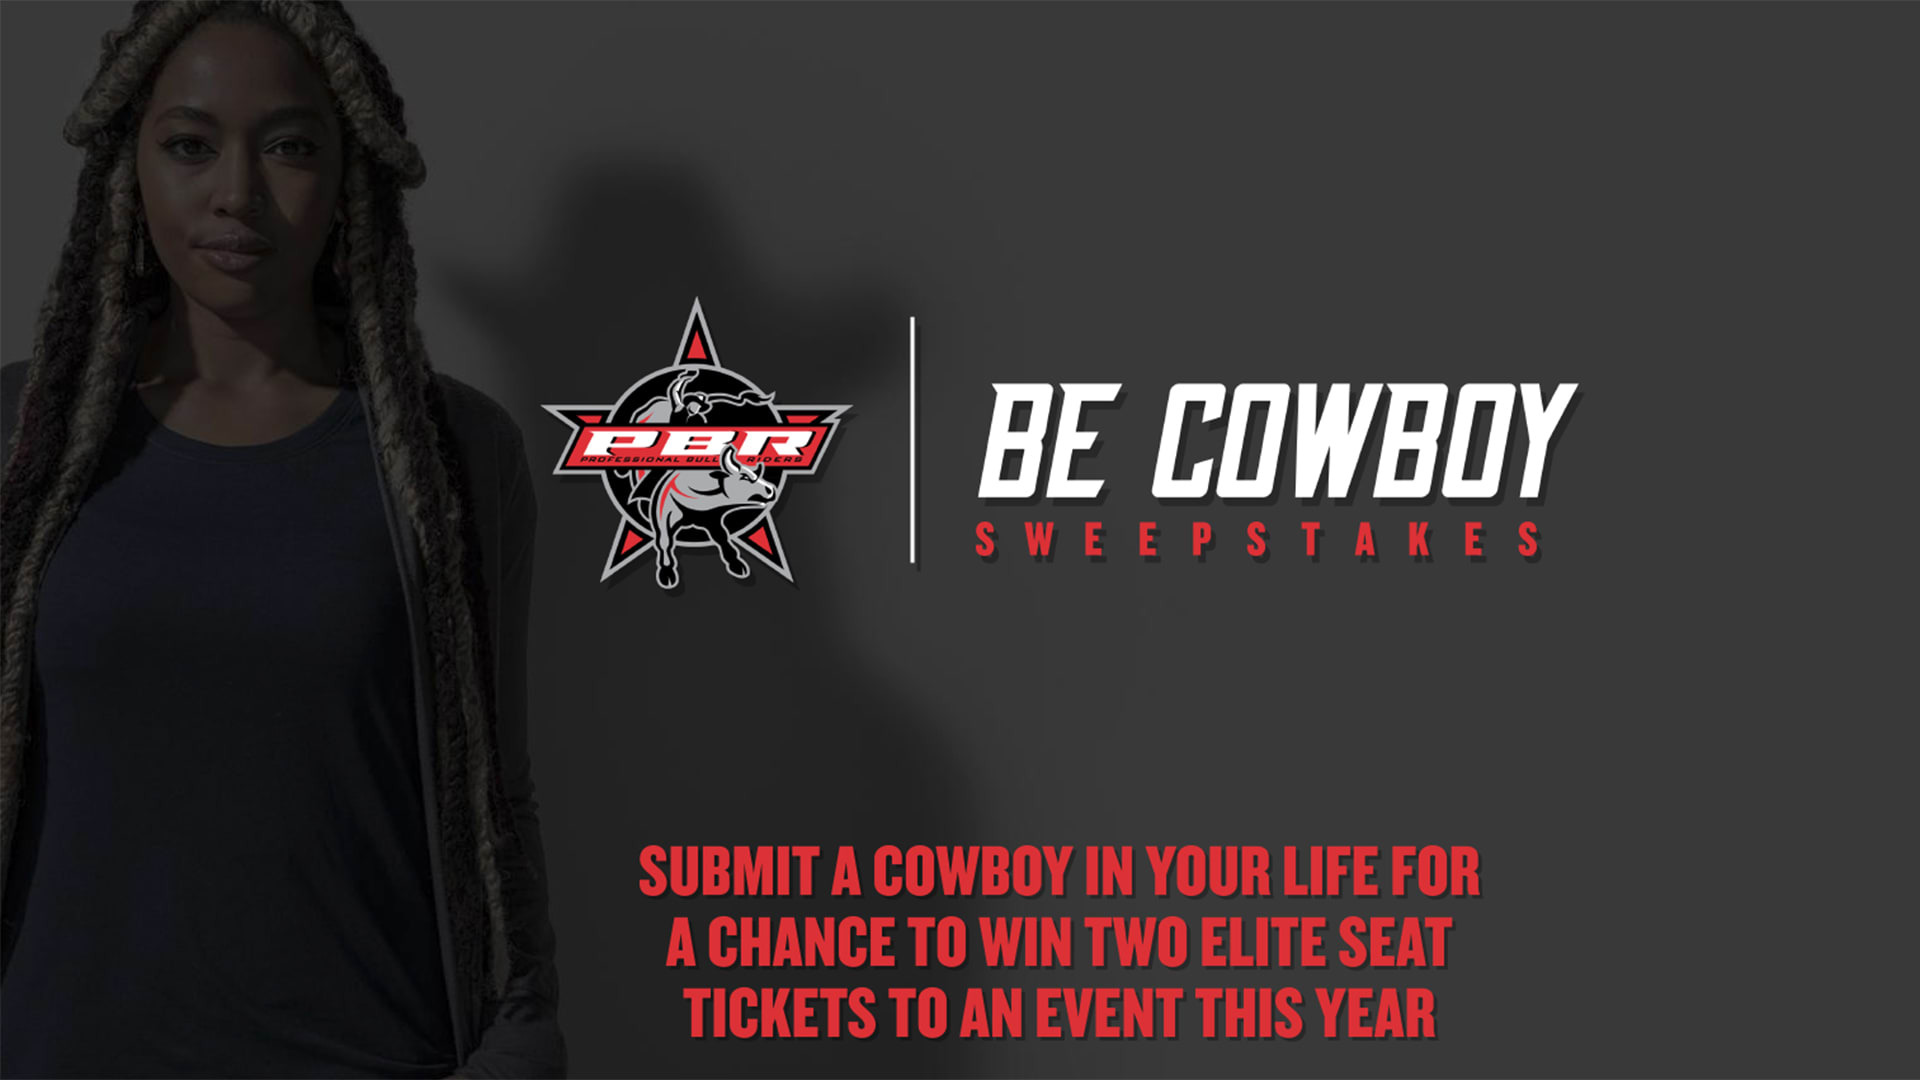 Be Cowboy: Enter the cowboy in your life for a chance to win